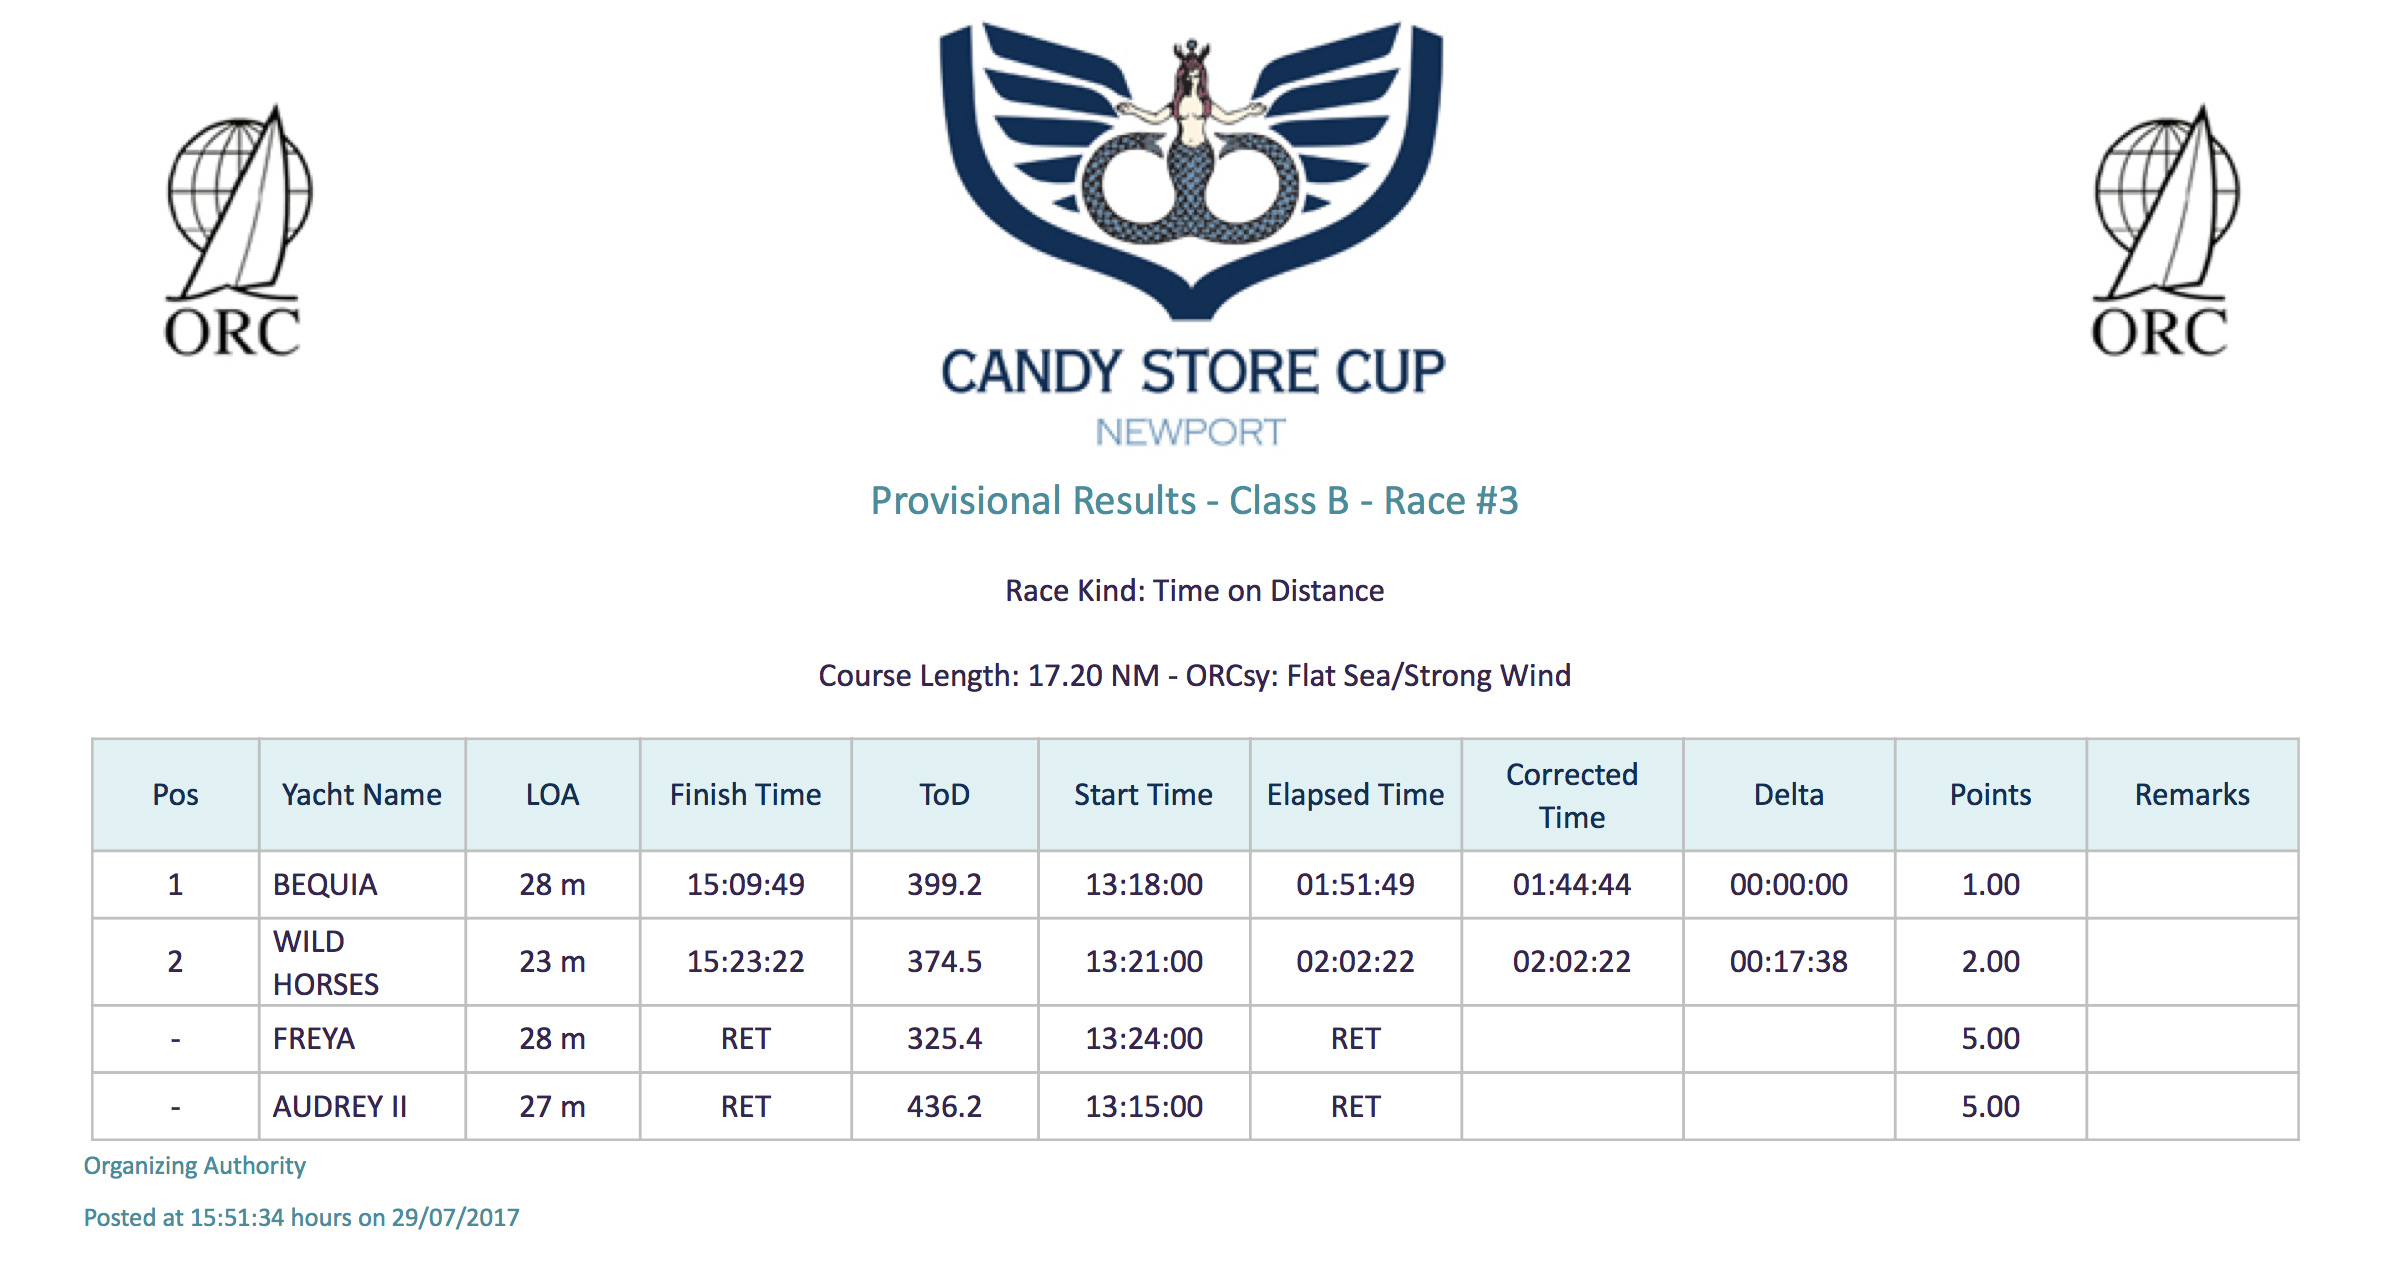 Candy Store Cup - Race 3 Results, Class B